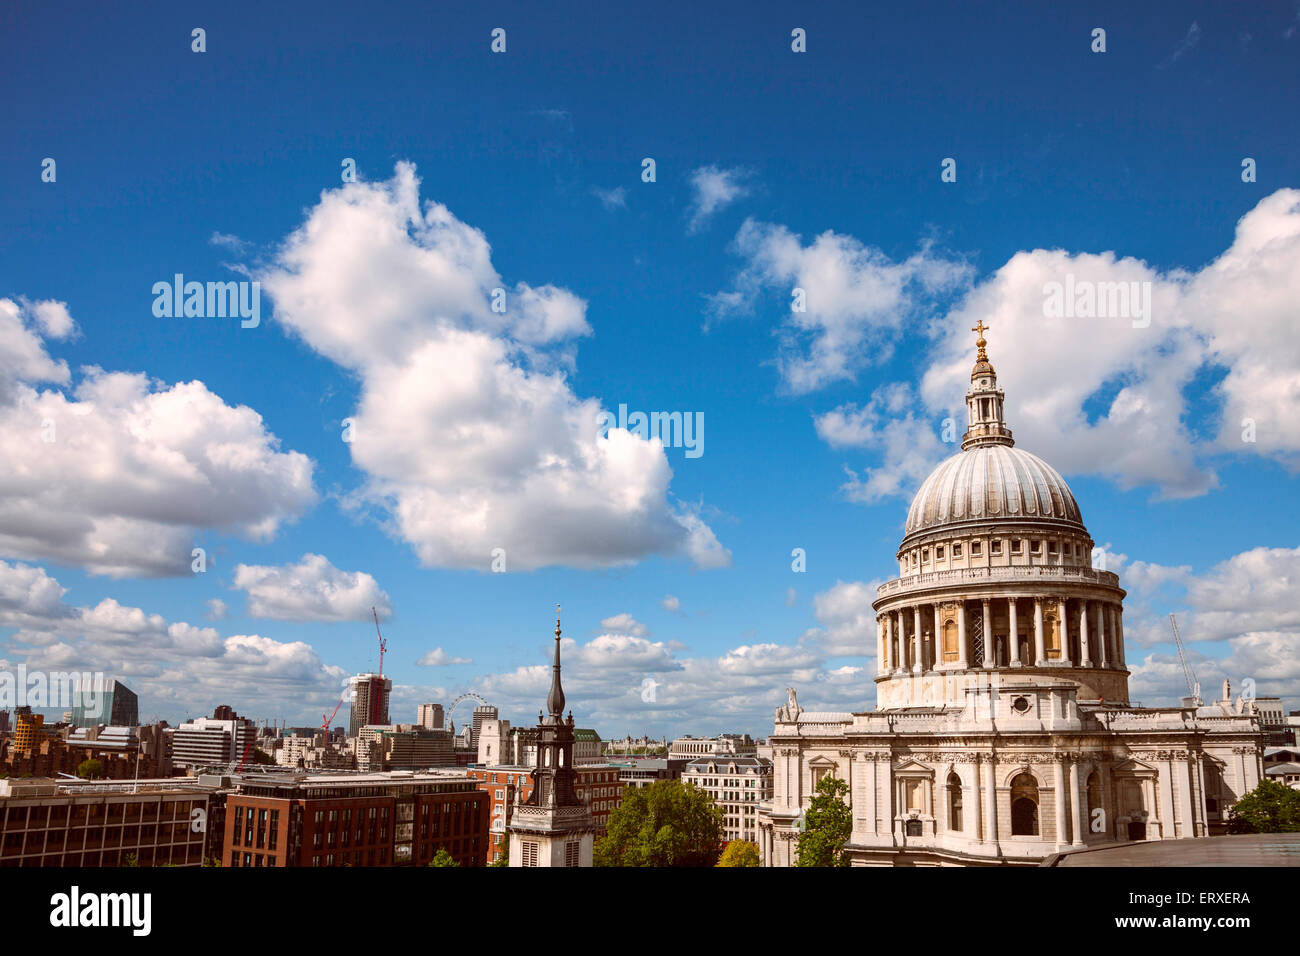 High angle views of St. Paul's cathedral and the City of London, UK. - Stock Image